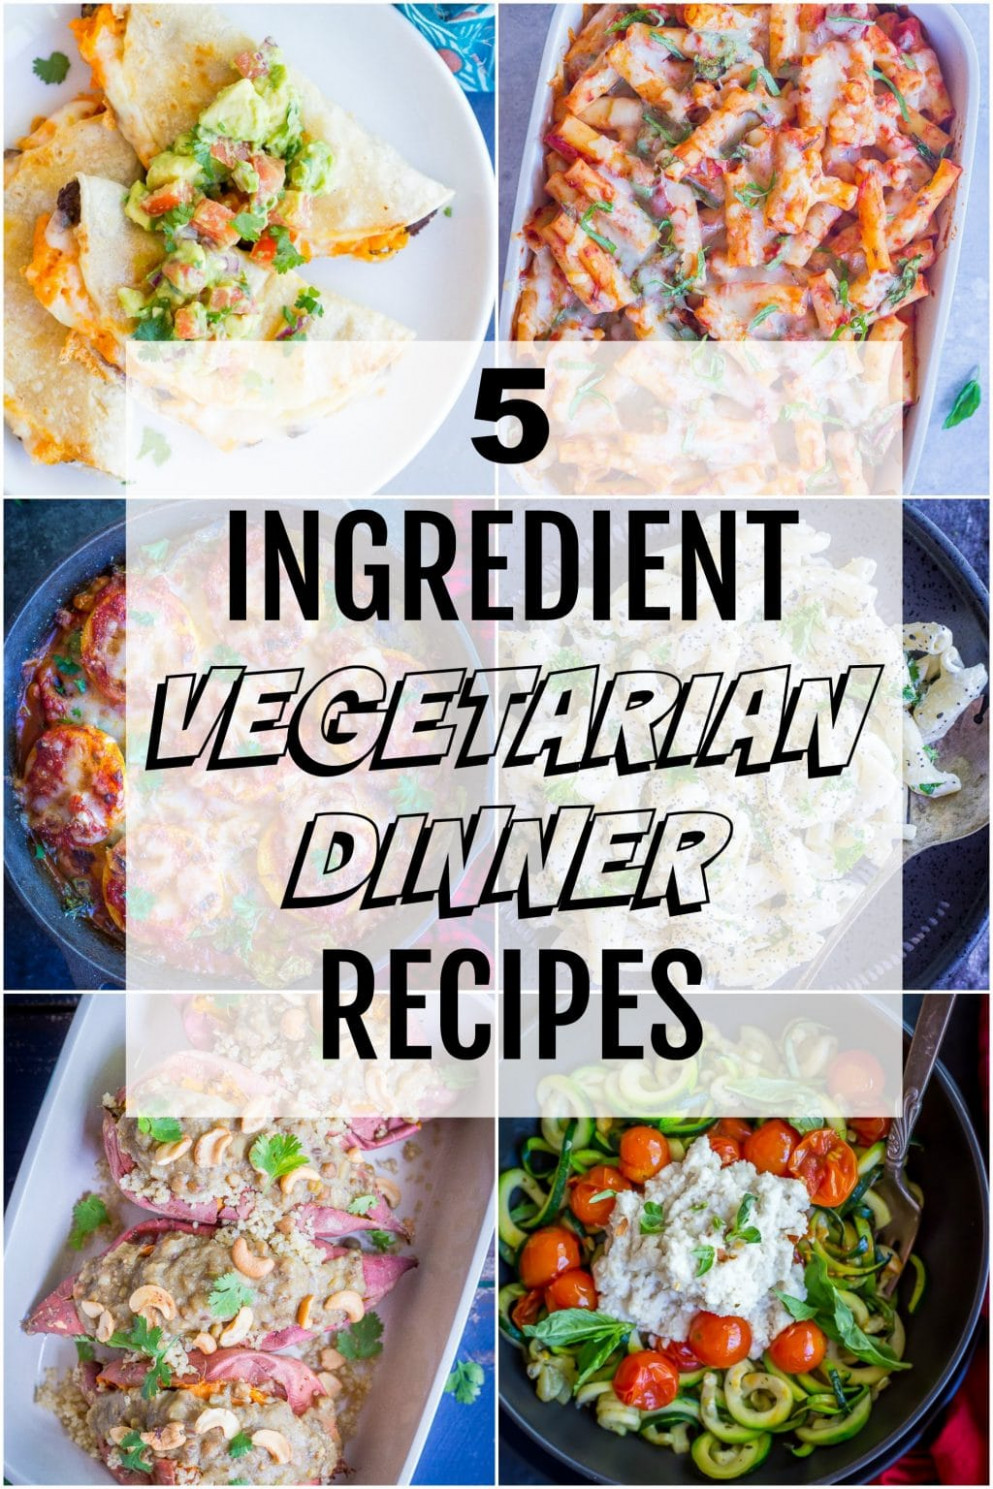 12 Ingredient Vegetarian Dinner Recipes - She Likes Food - recipes of vegetarian dishes